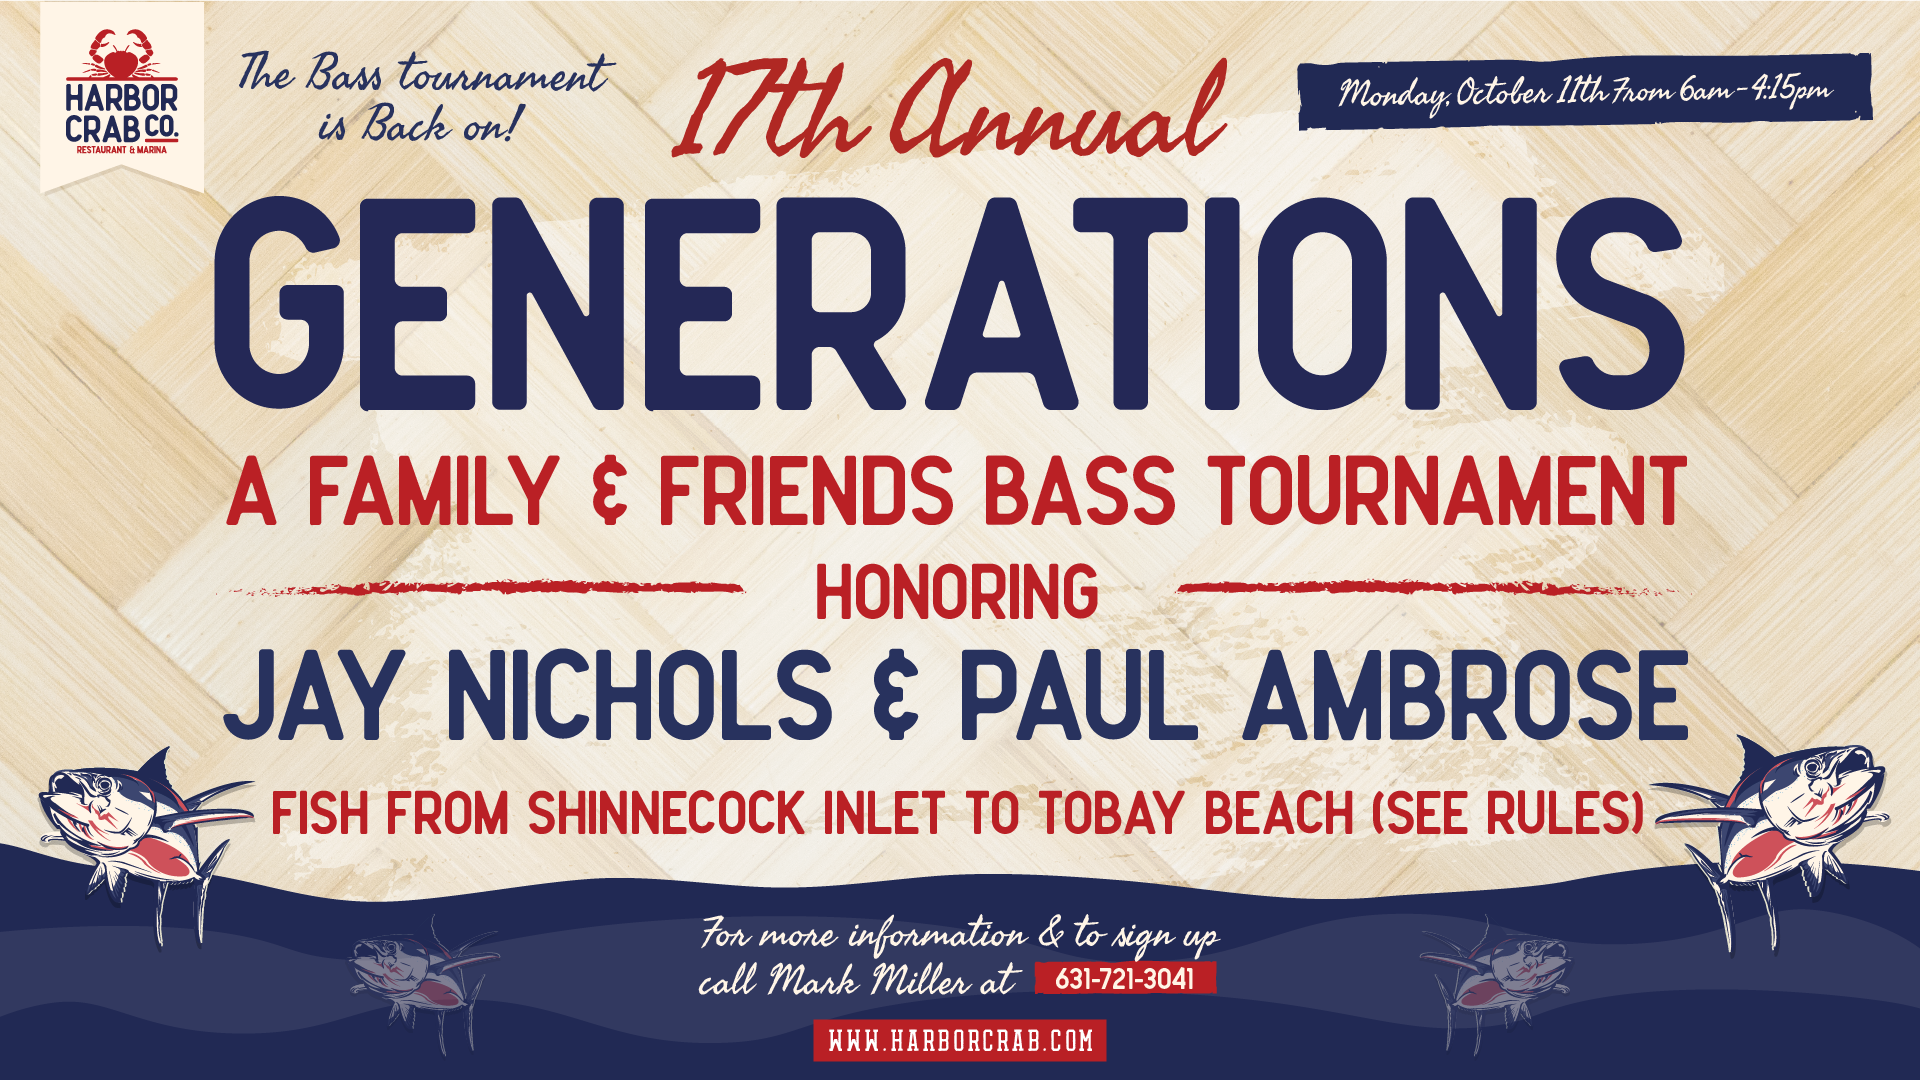 17TH Annual Generations Fishing Tournament Oct. 11th